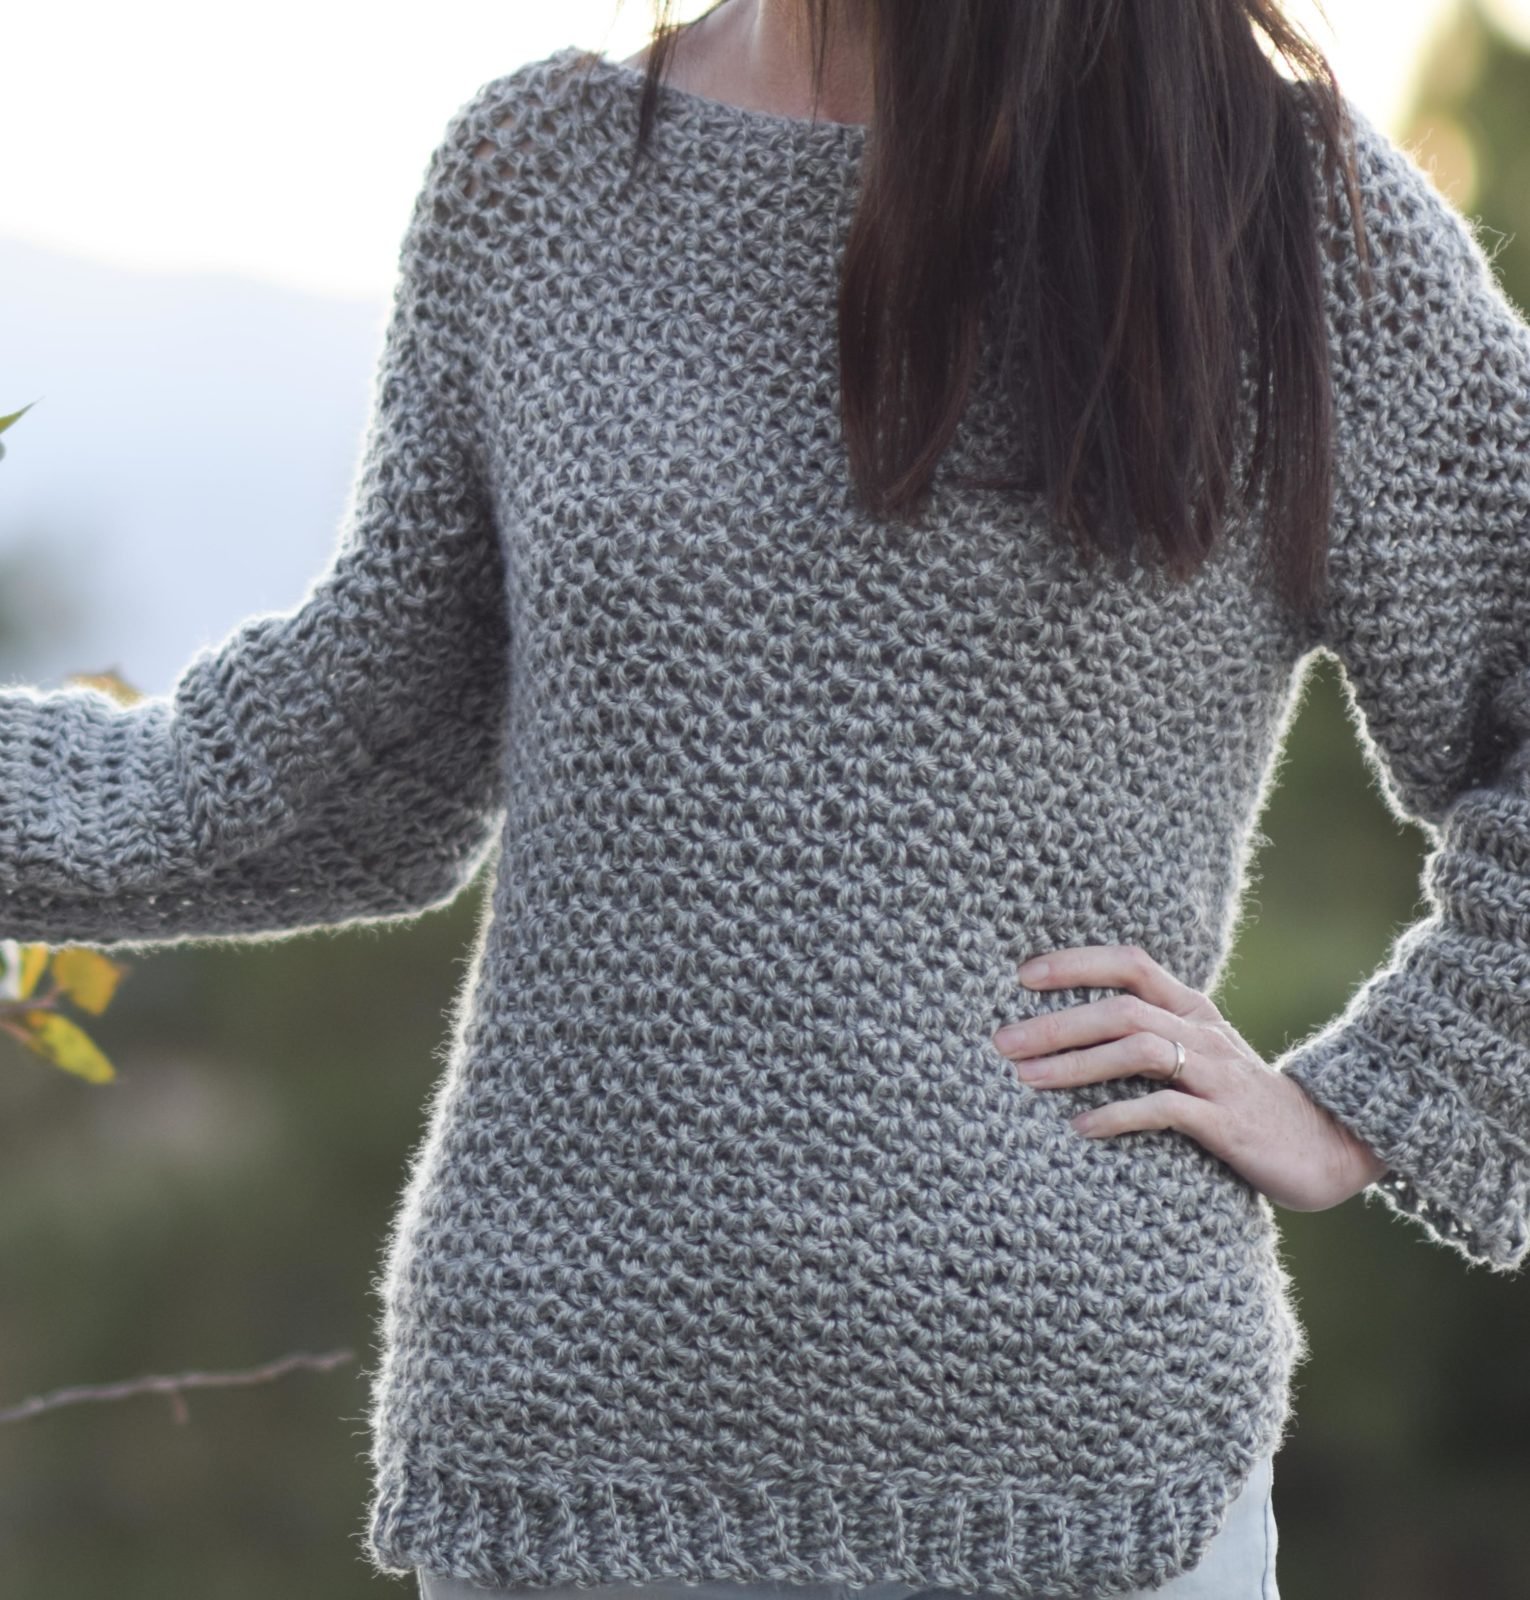 How To Make An Easy Crocheted Sweater (Knit-Like) – Mama ...